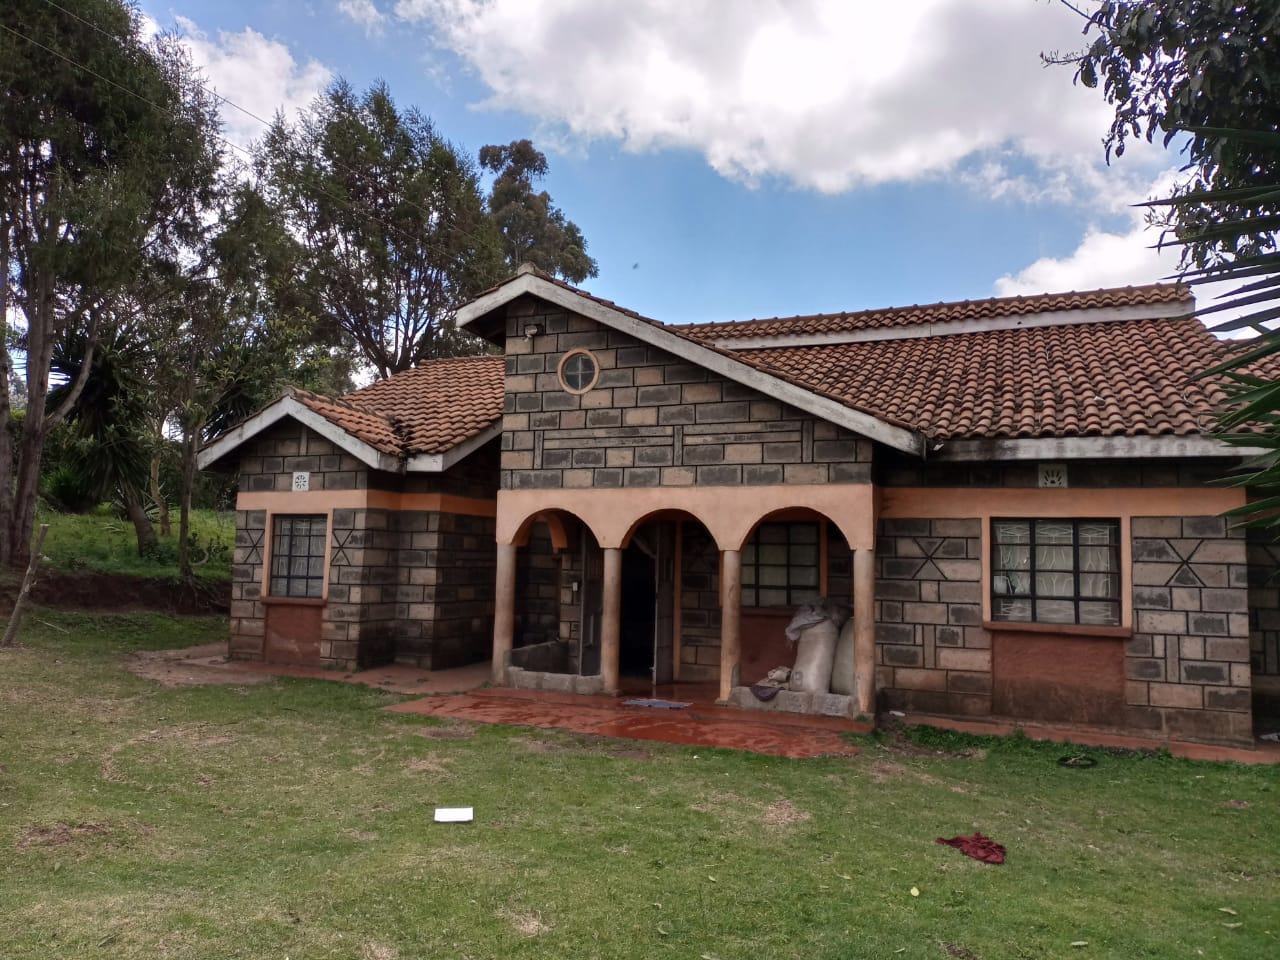 For sale: One and Quarter Acre Plus the House going for Ksh16M In limuru